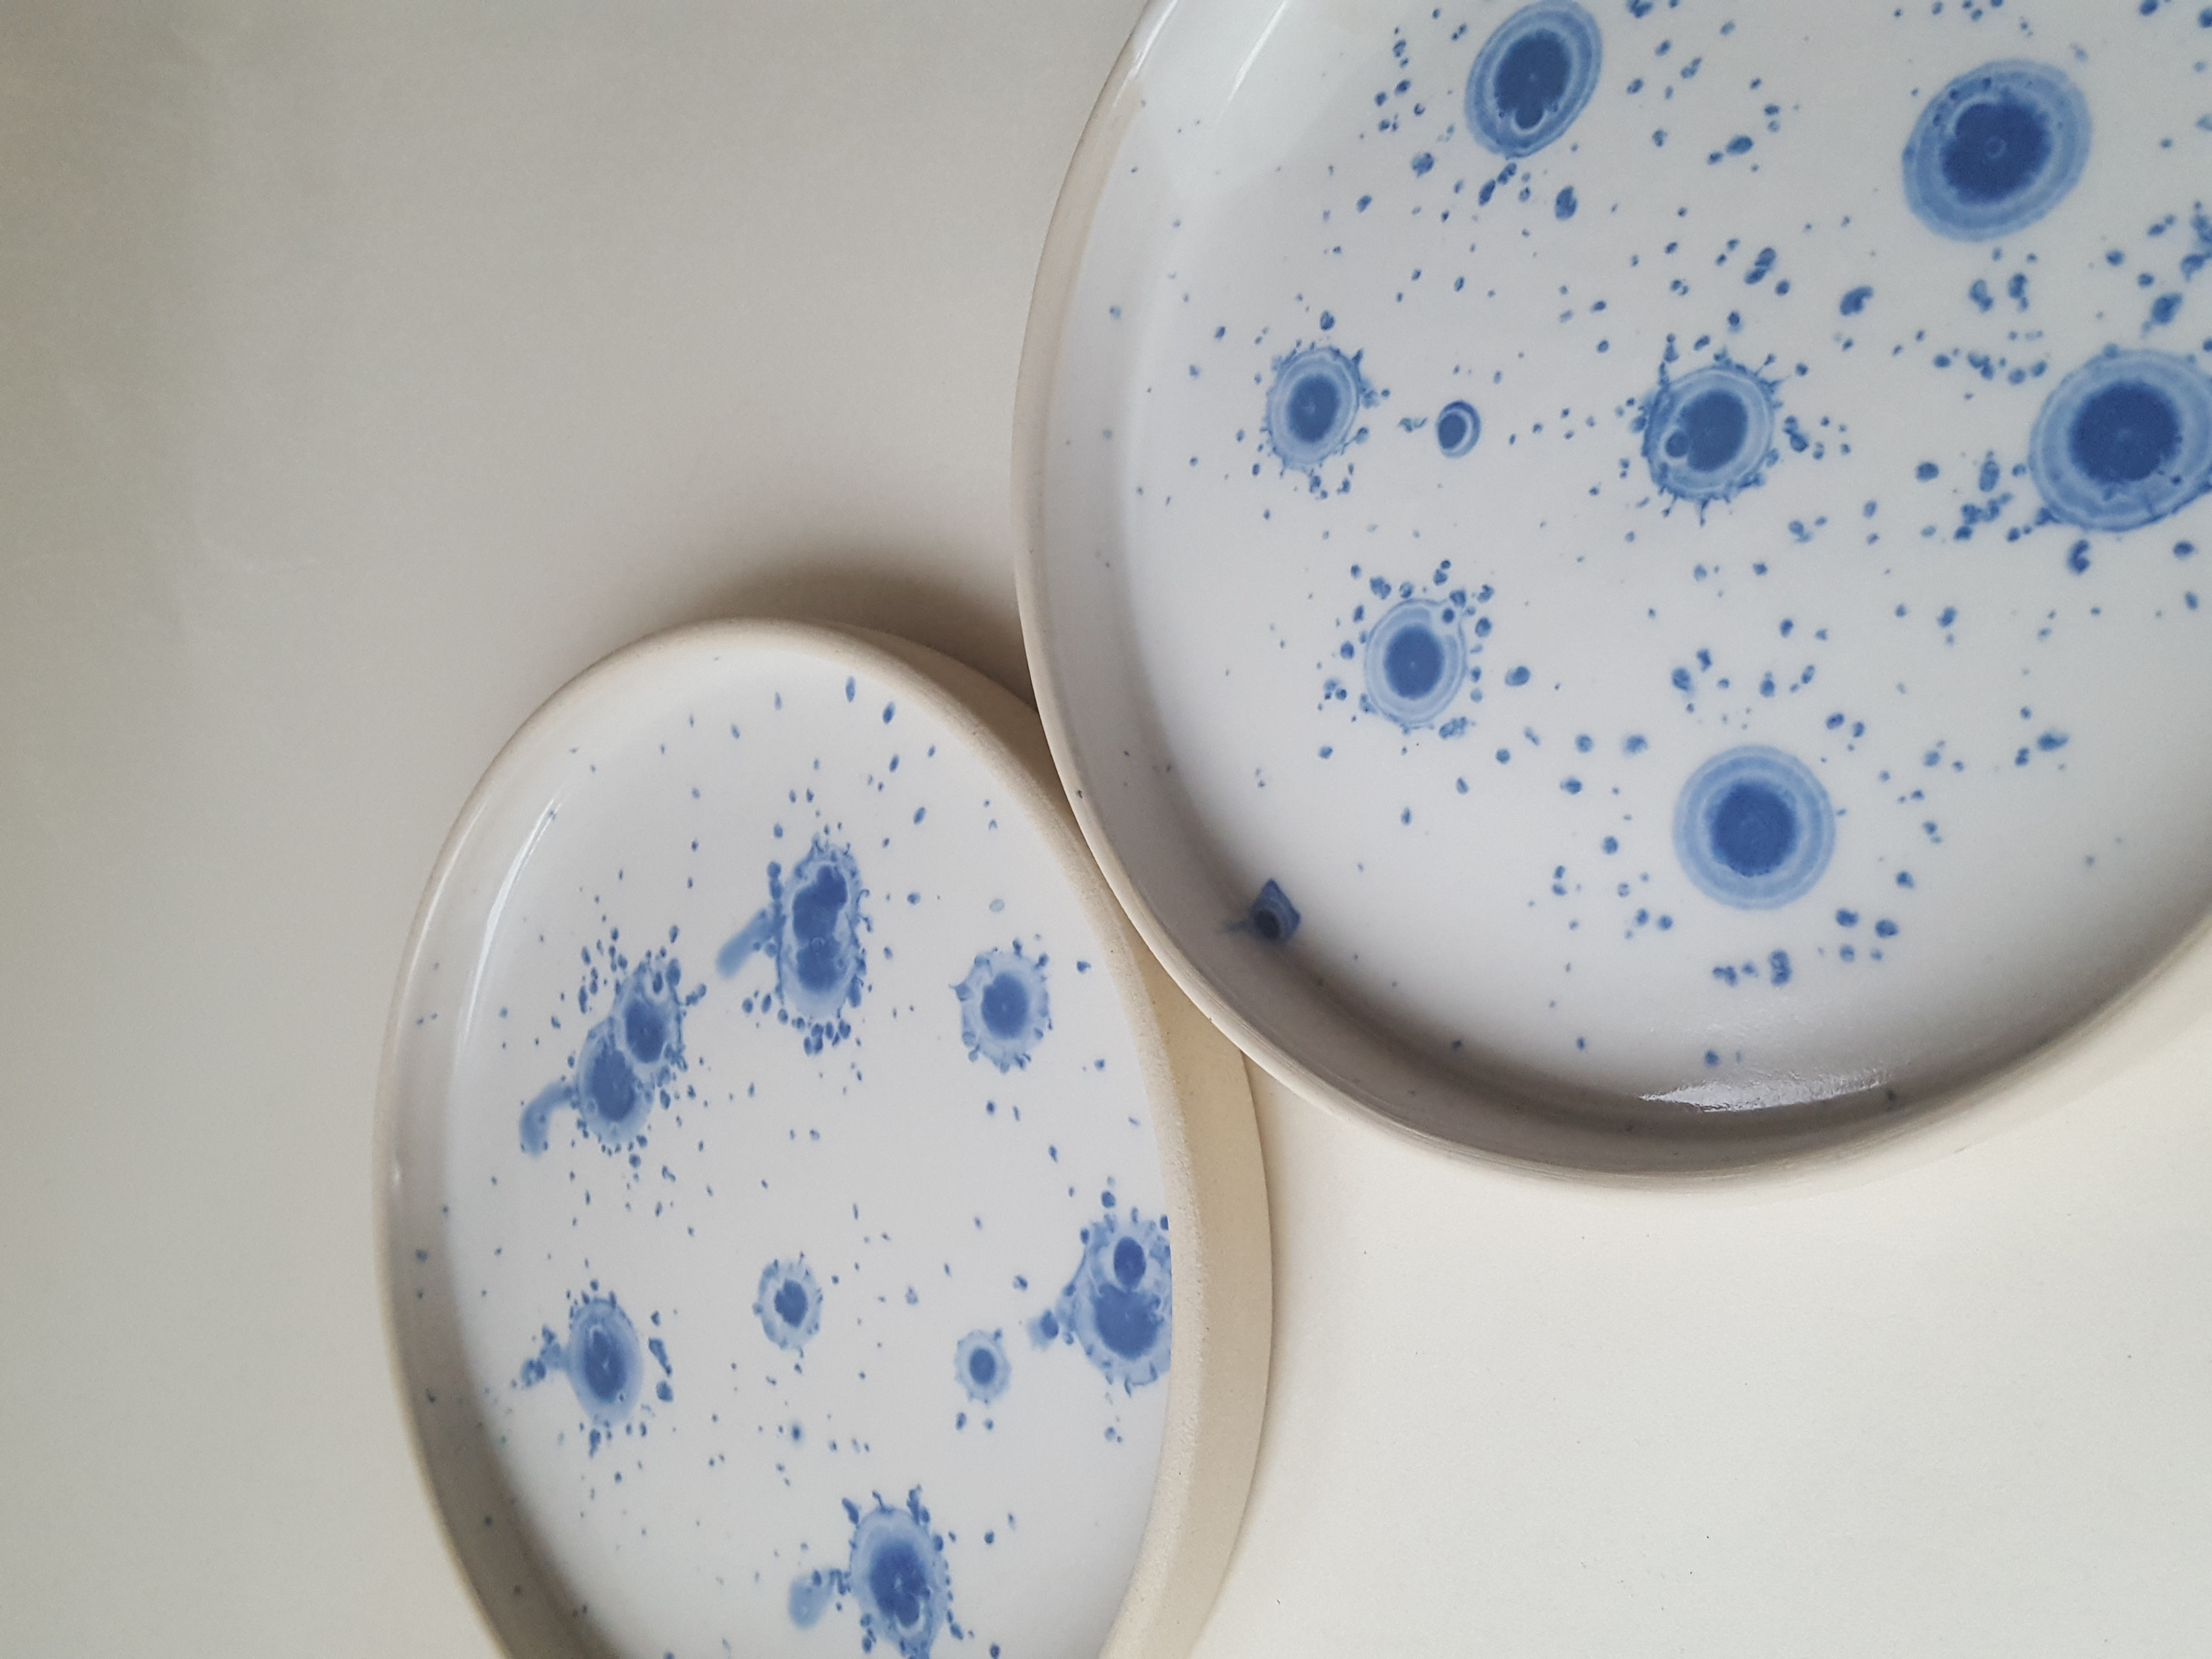 Blue and white shallow bowls